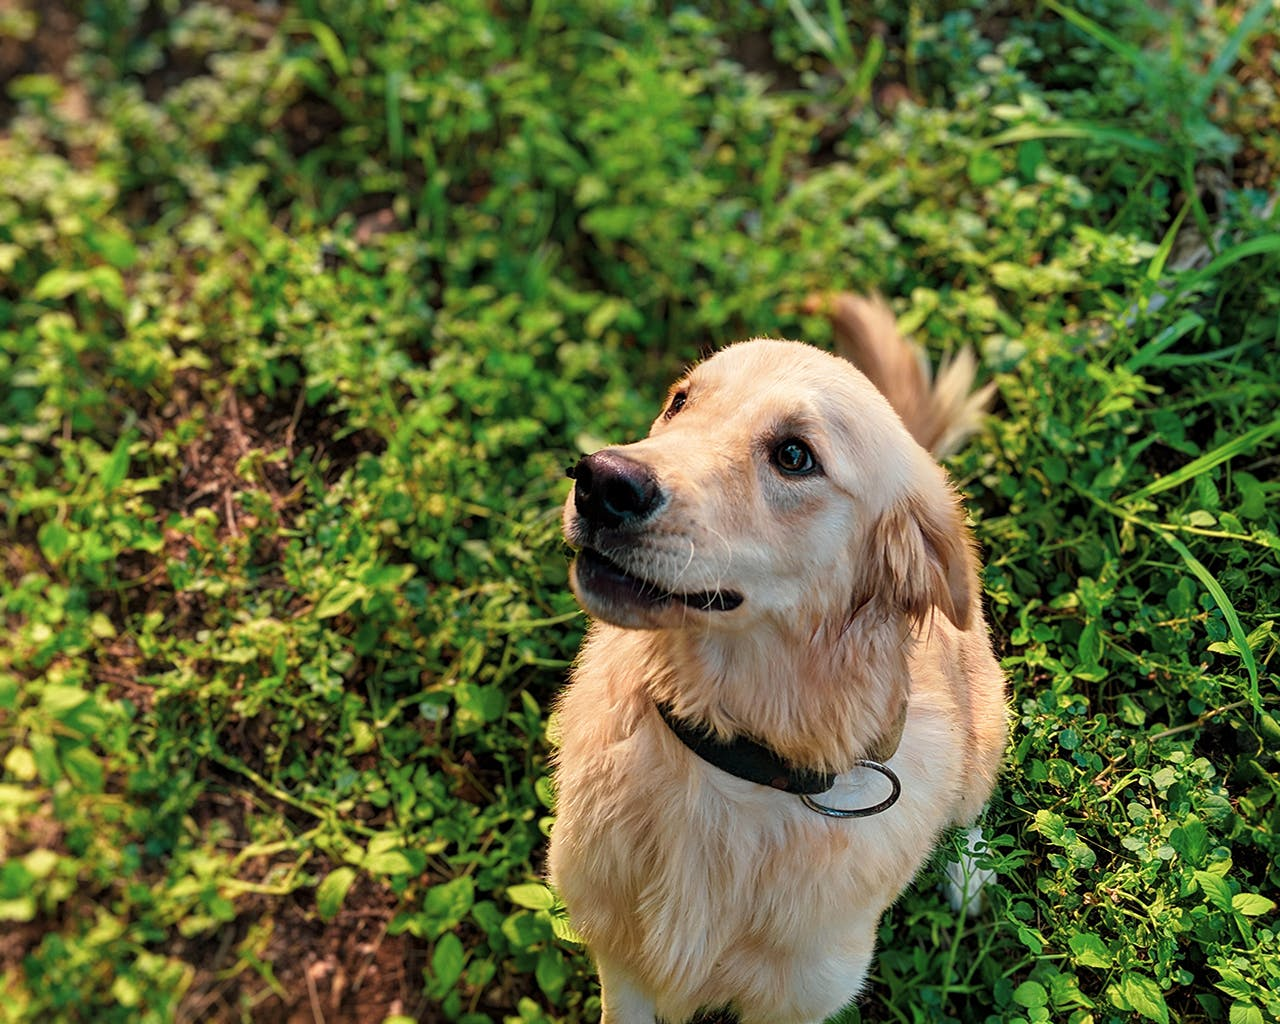 Before Getting Your First Pet Dog, Here Are 7 Things You Need To Know